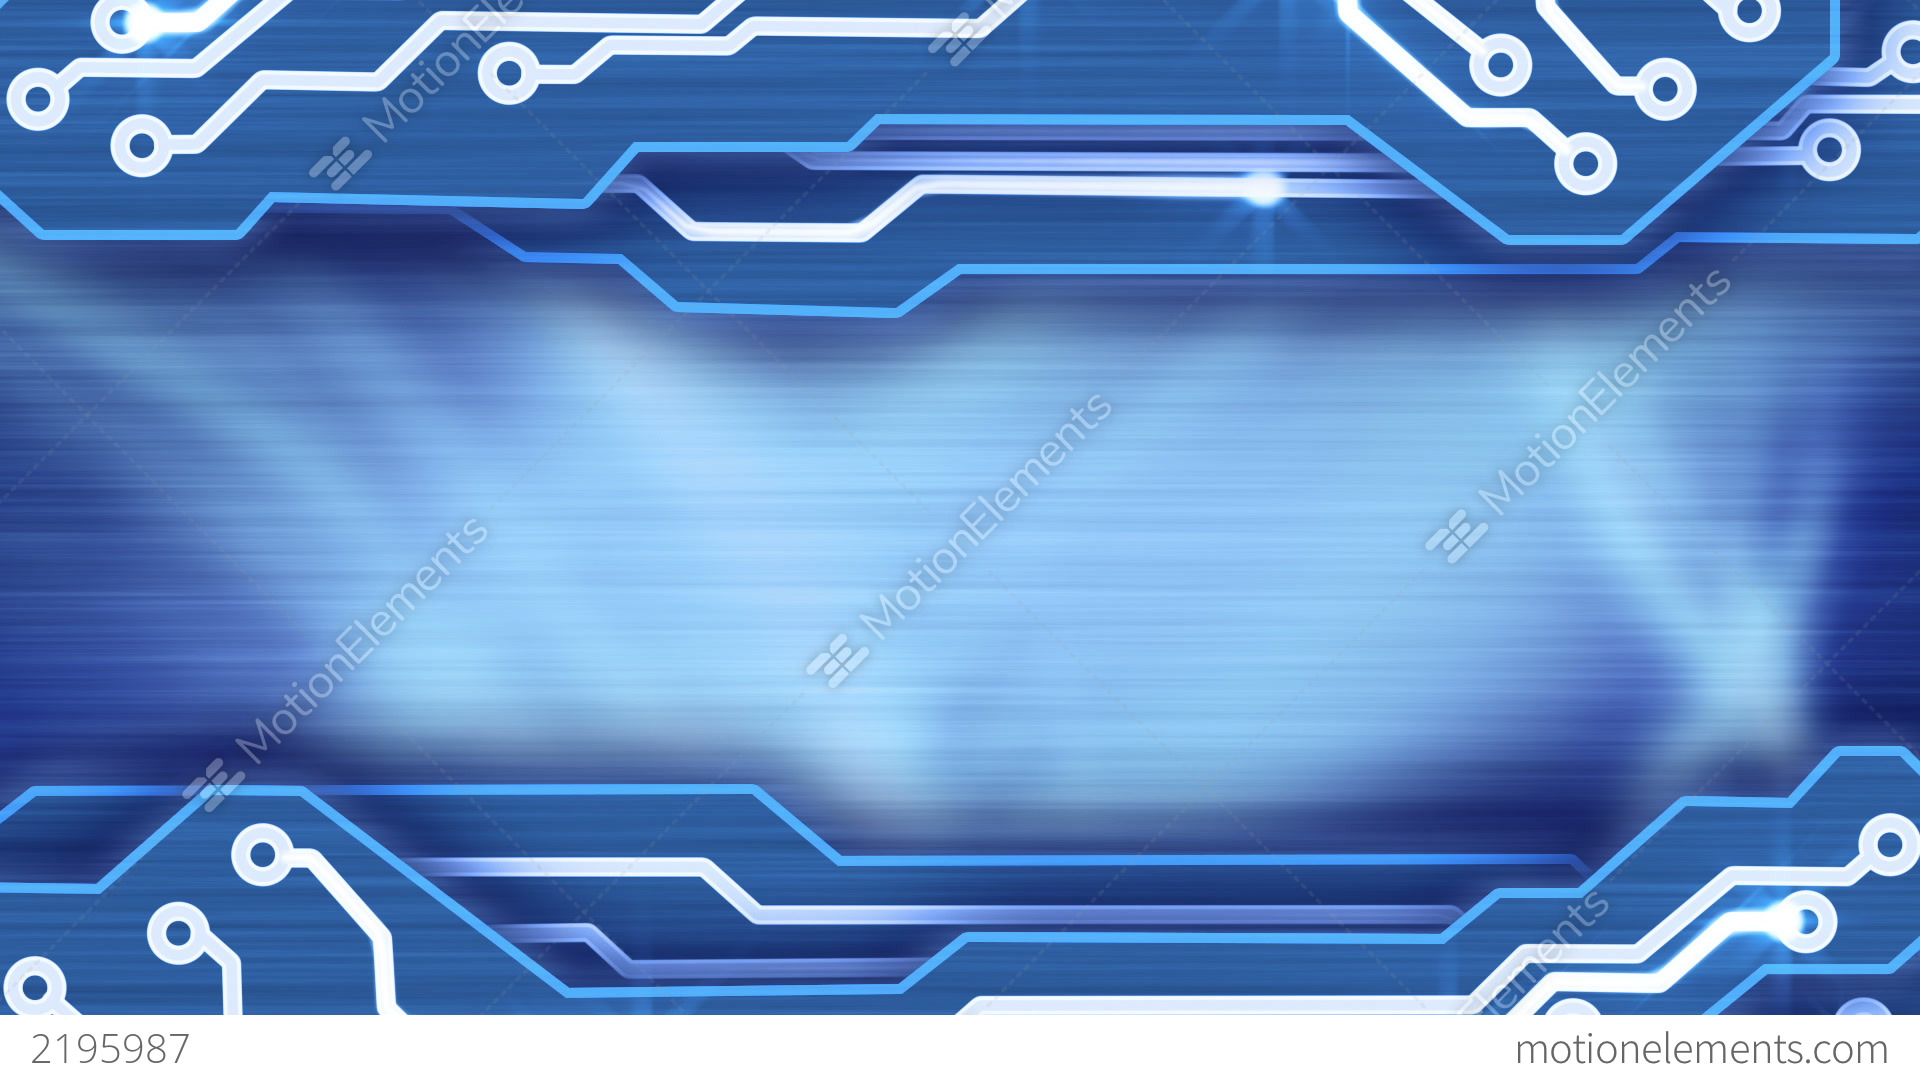 electronic circuit plates blue loop background stock